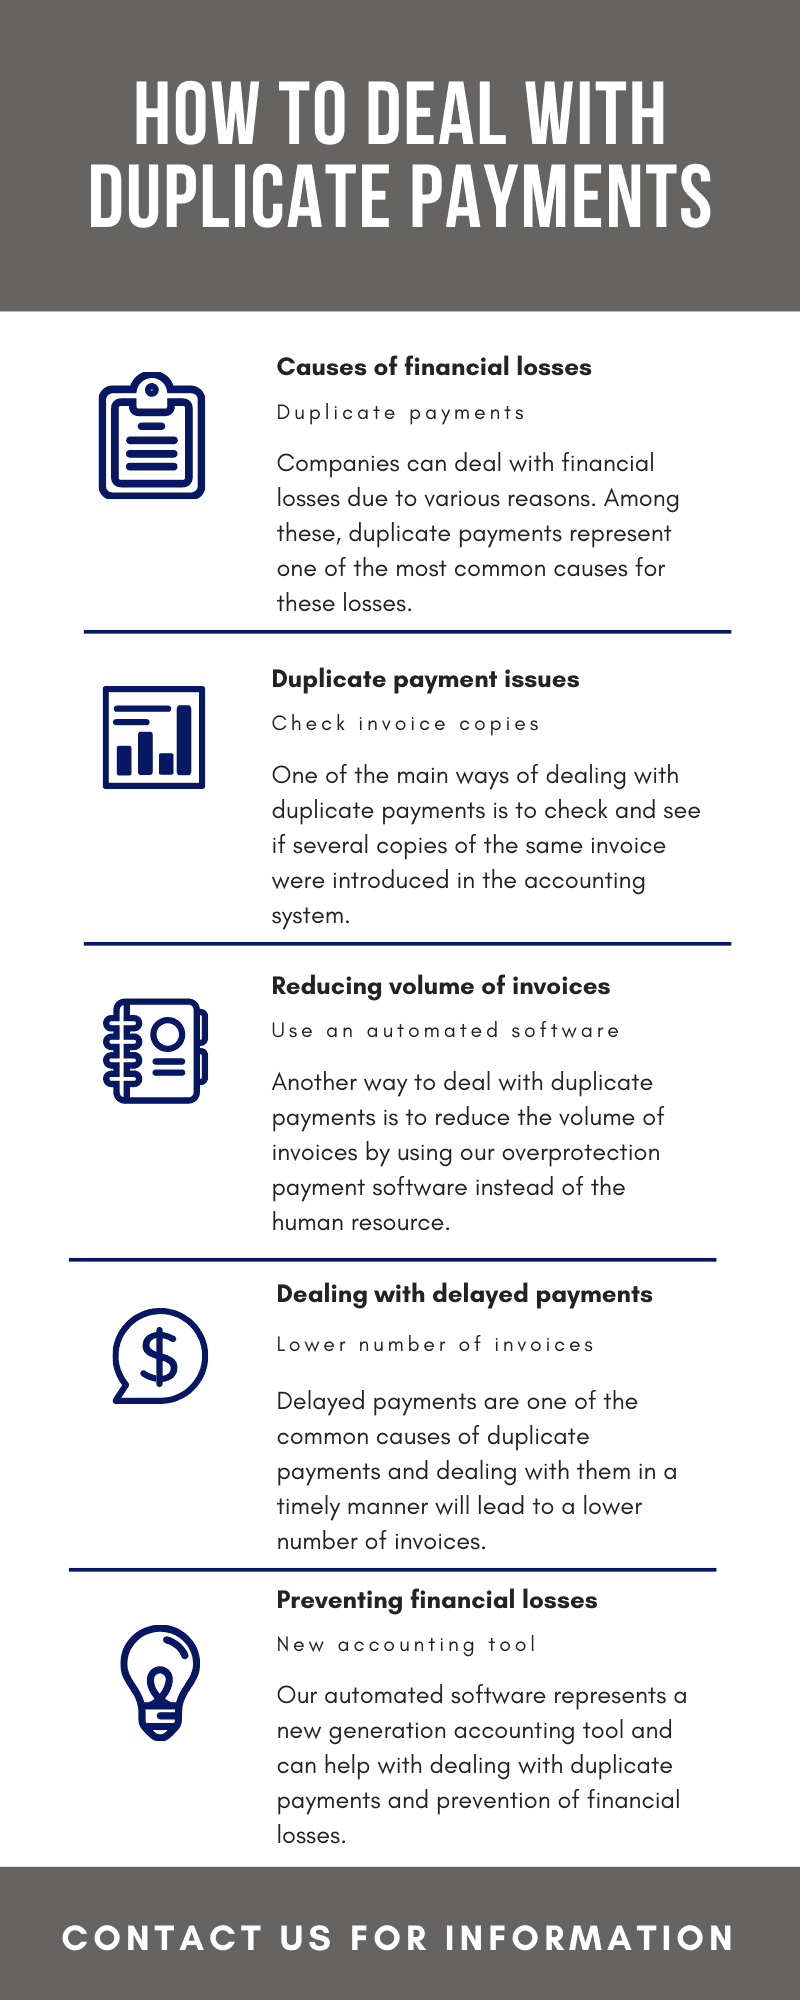 How to deal with duplicate payments